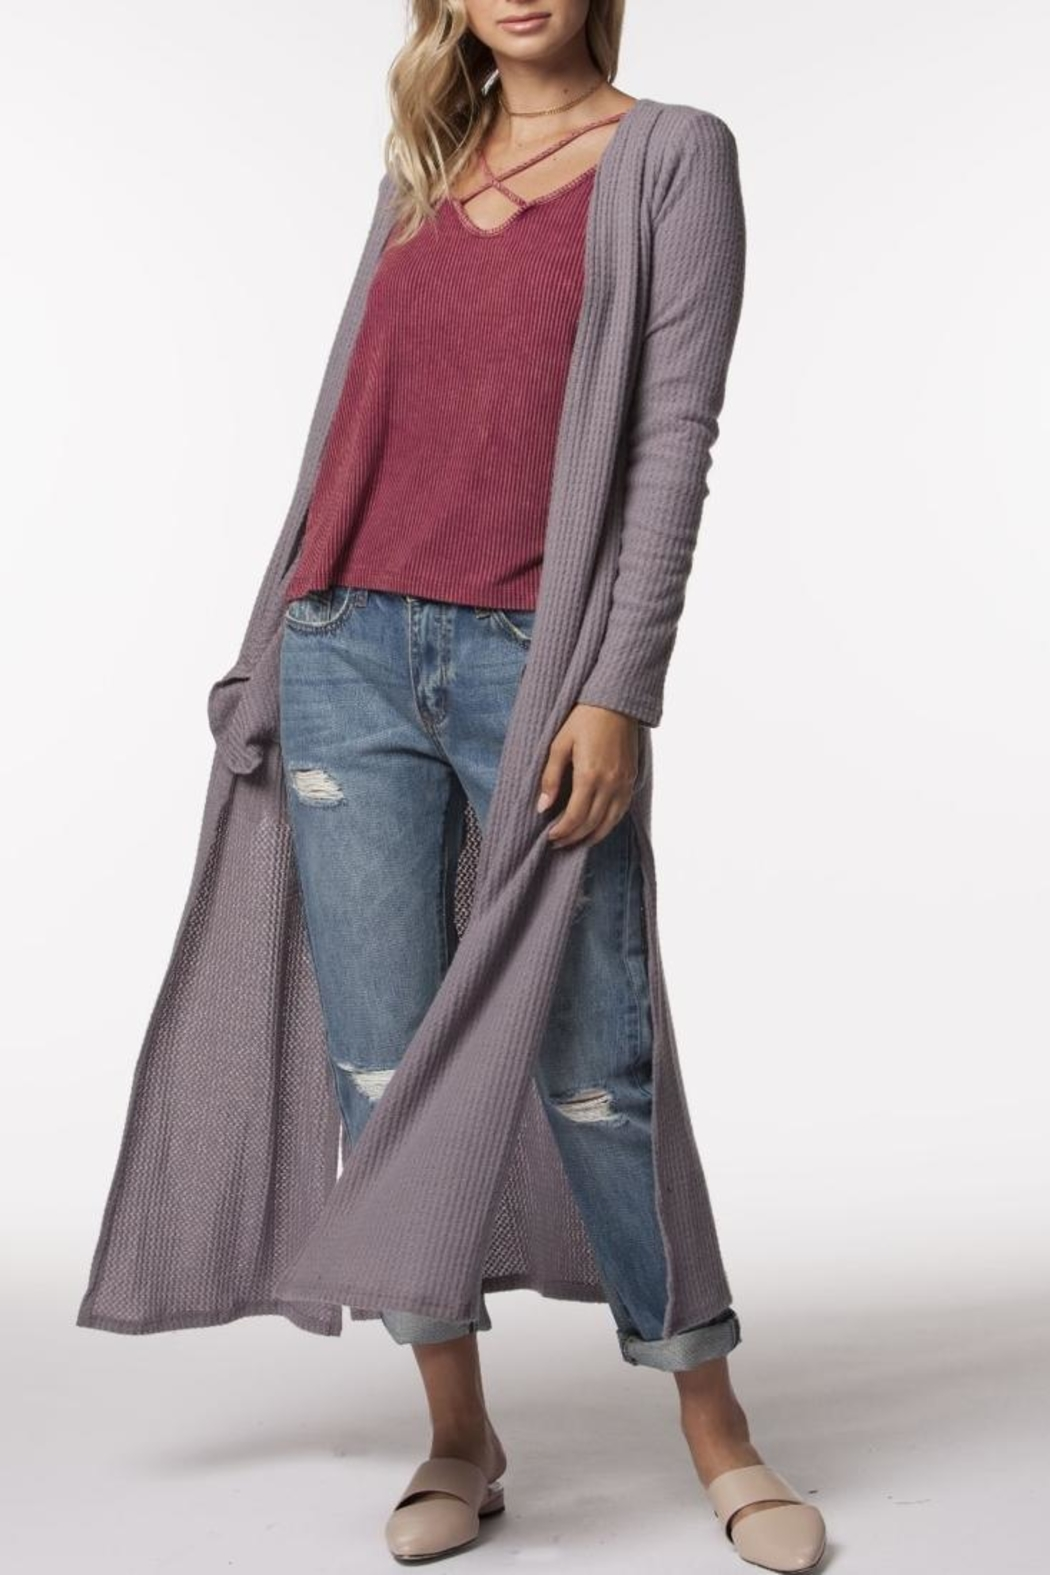 PPLA Clothing Zaria Duster - Main Image